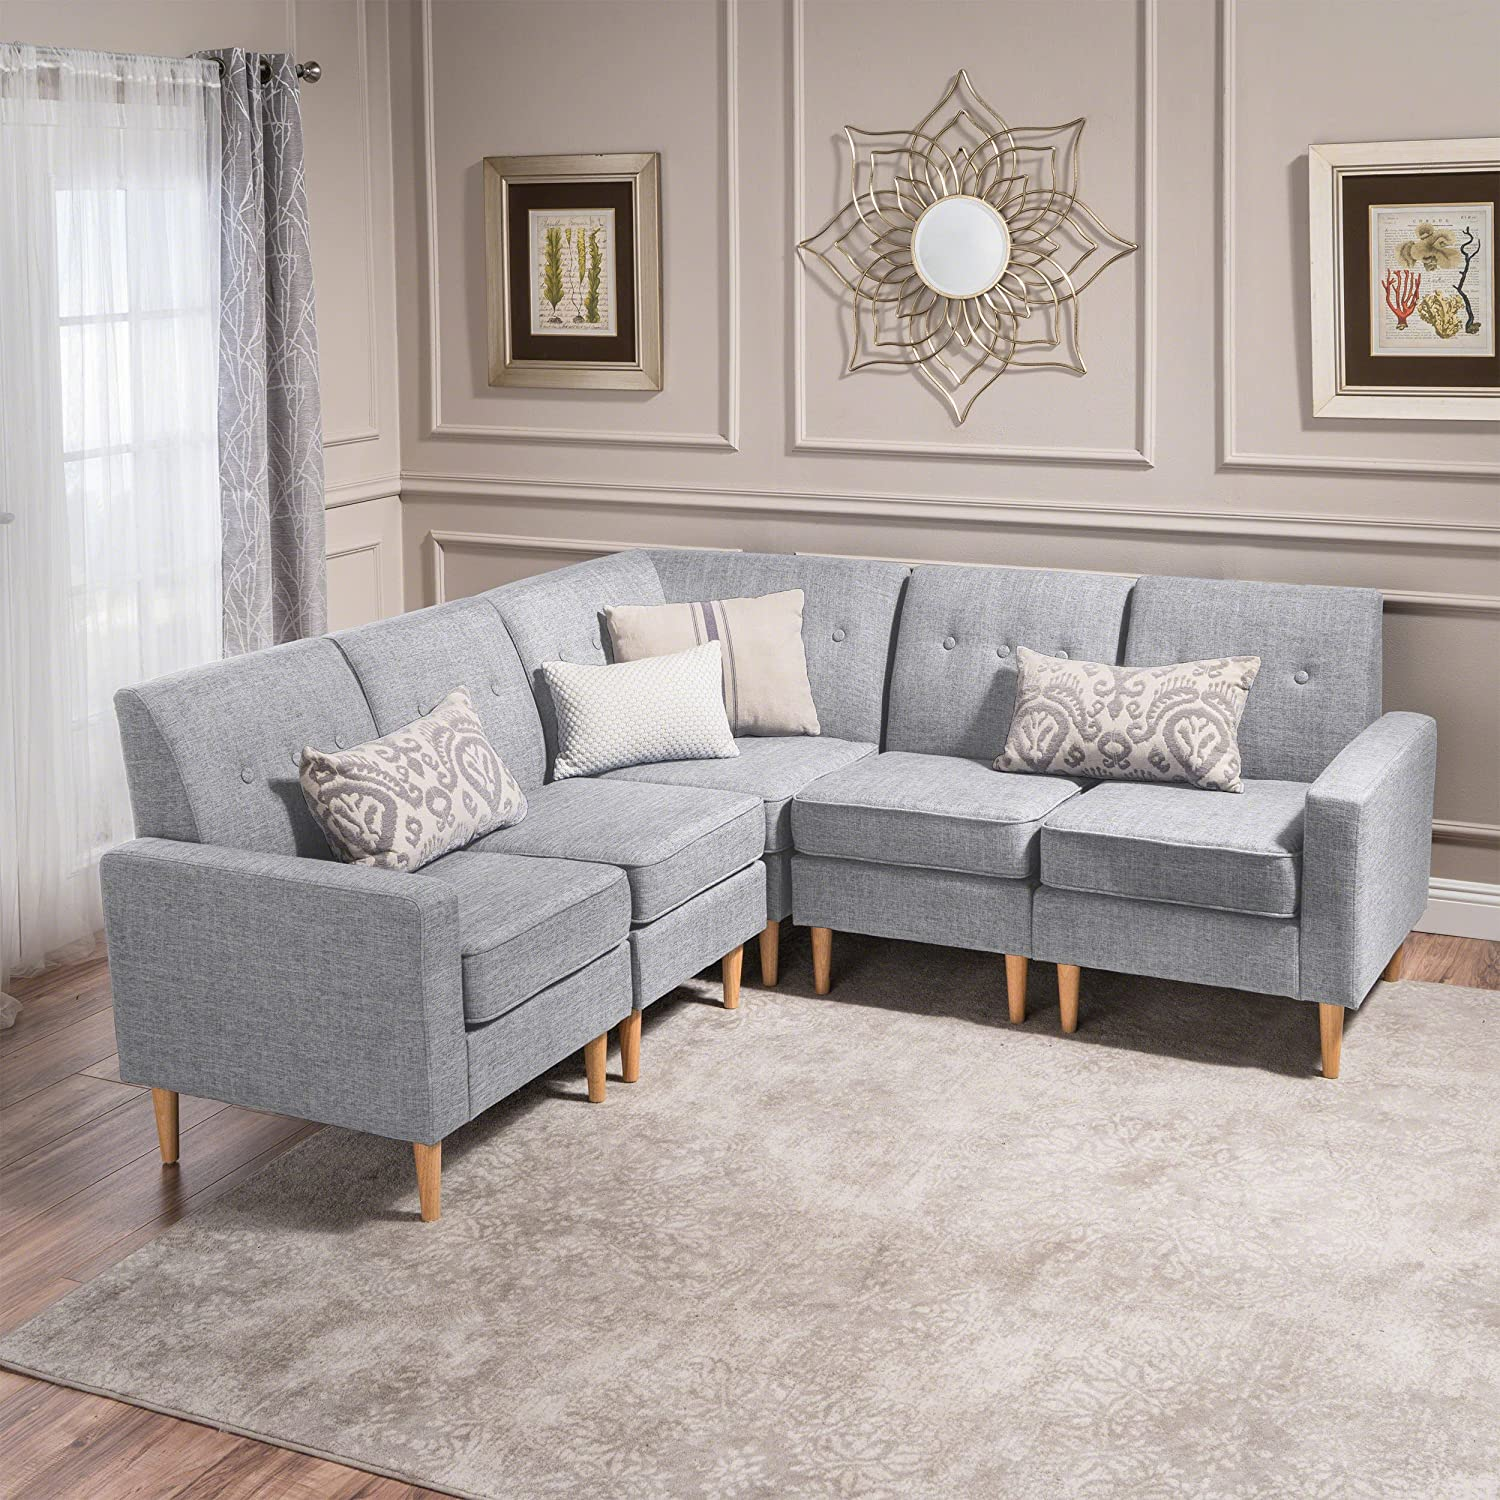 Fantastic Christopher Knight Home 5 Piece Sawyer Mid Century Modern Sectional Sofa Light Grey Tweed Natural Spiritservingveterans Wood Chair Design Ideas Spiritservingveteransorg